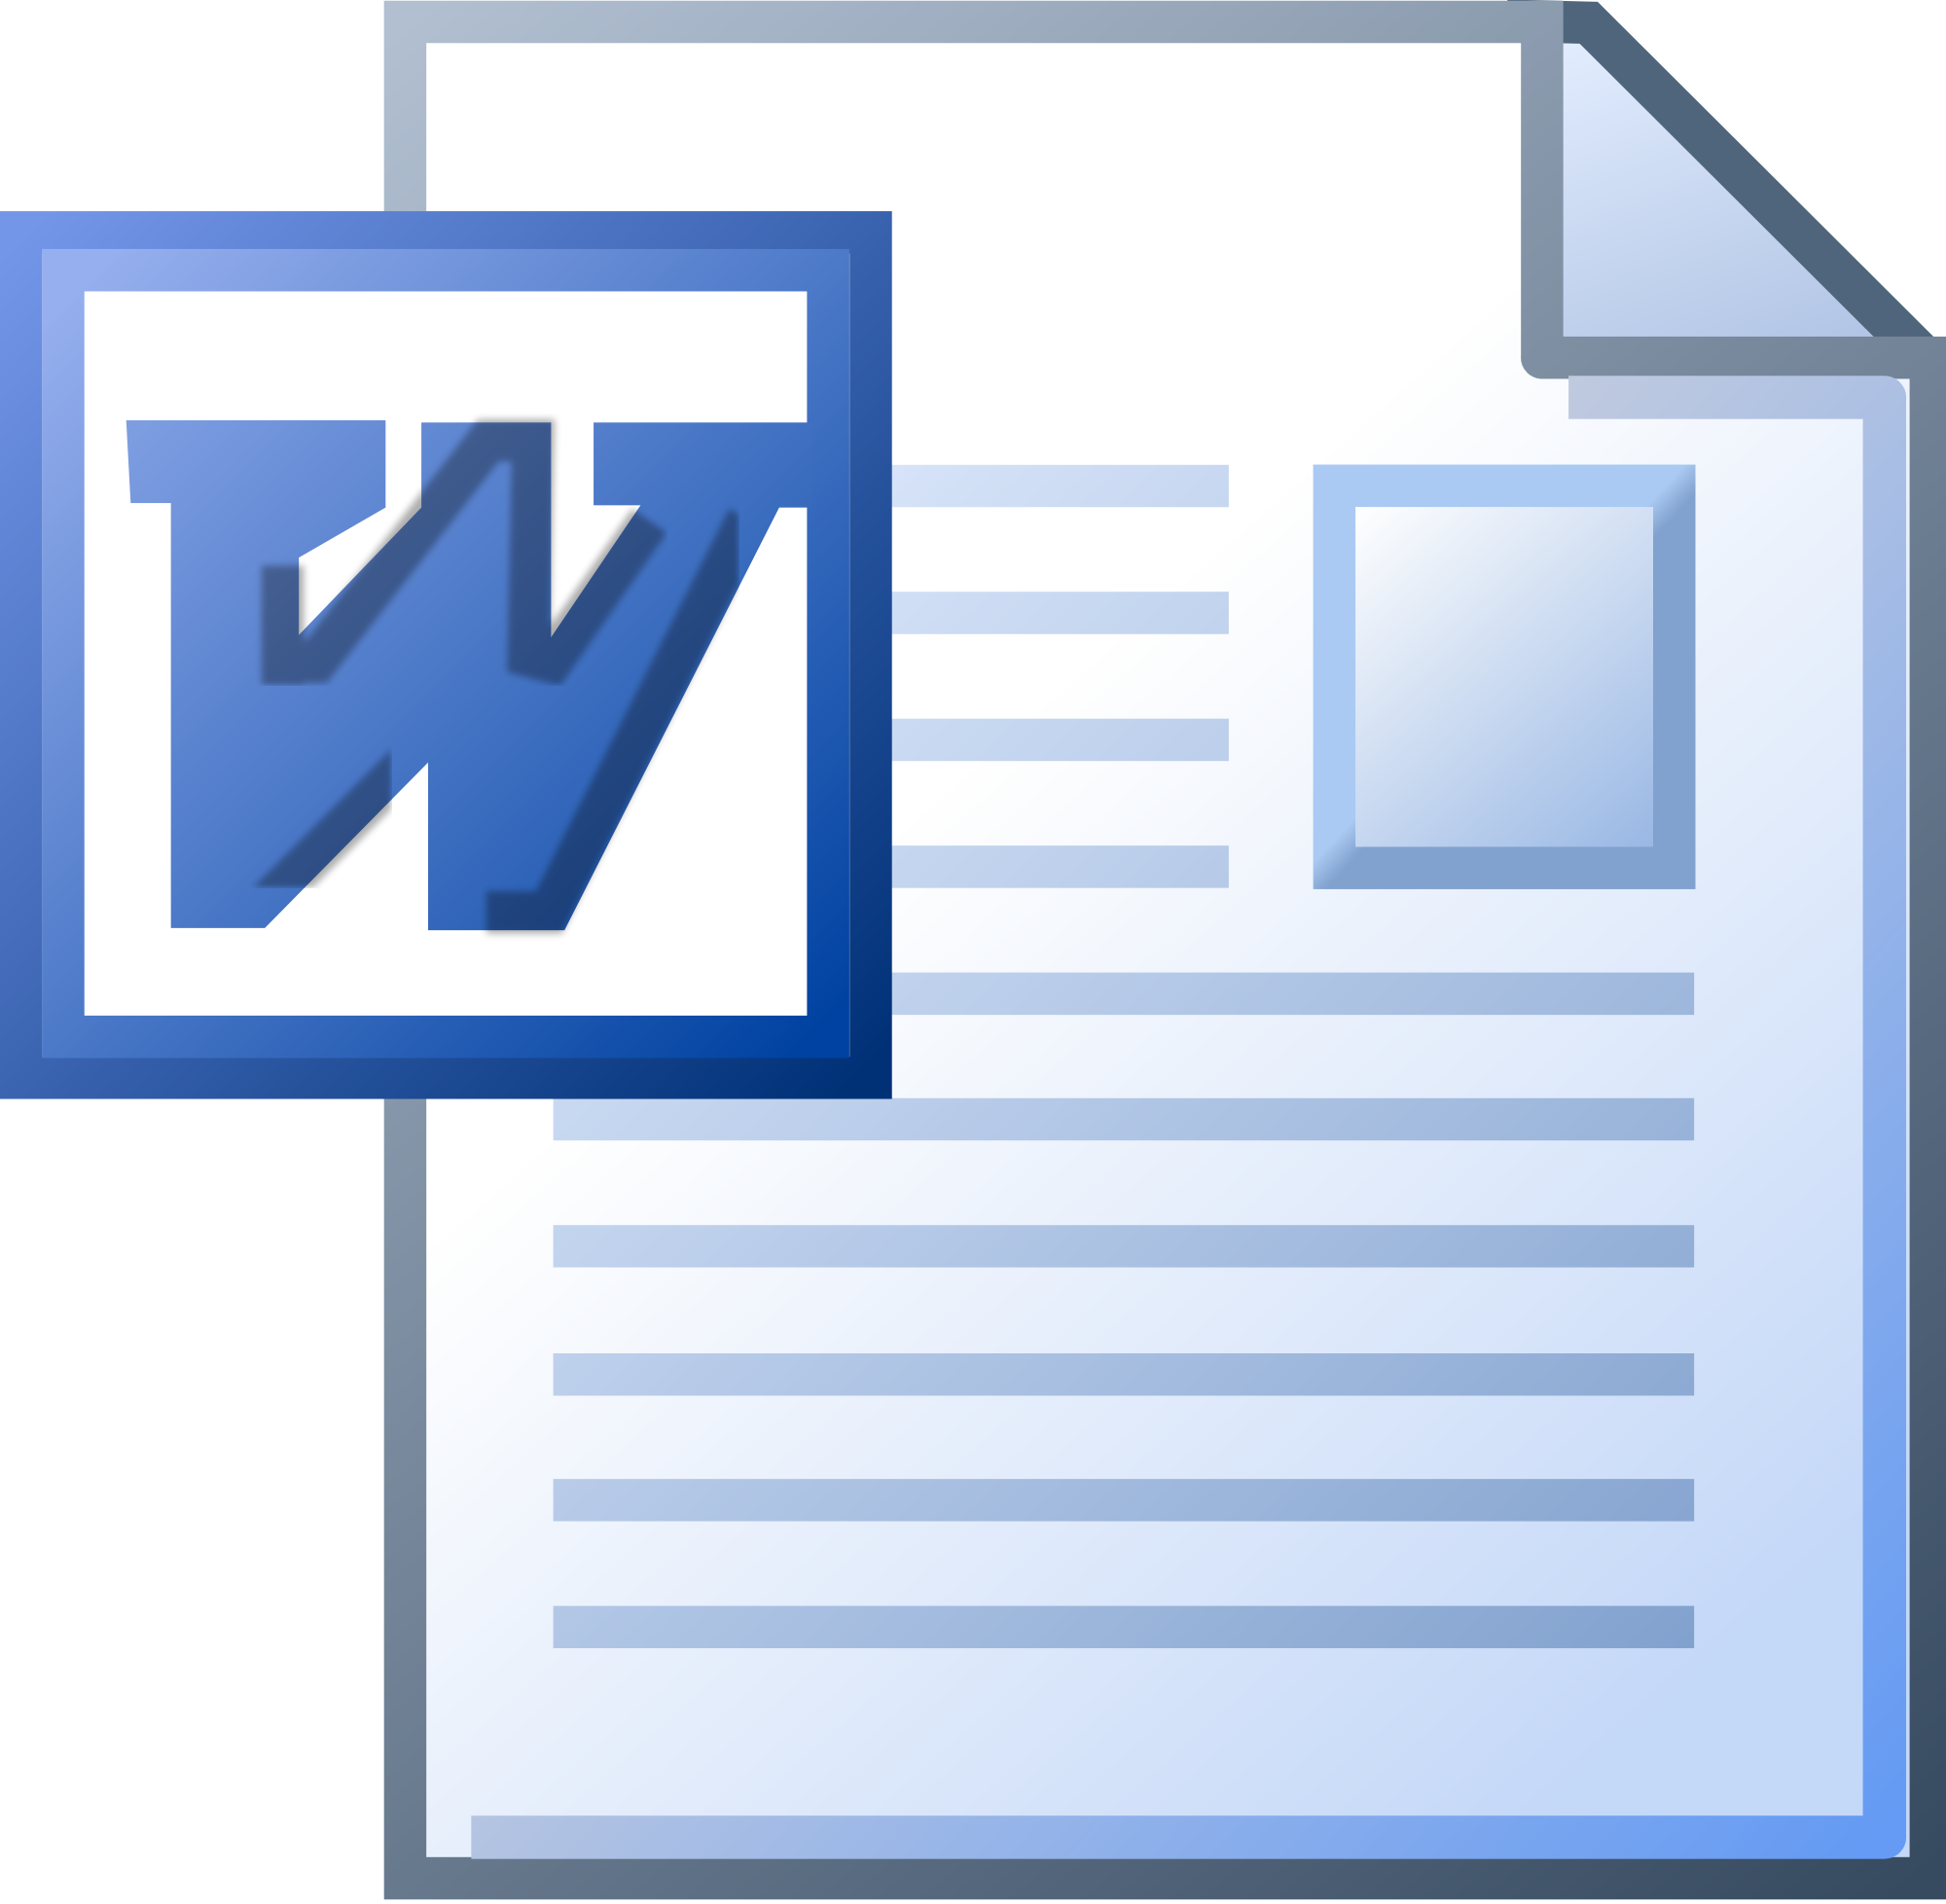 Dissertation - Features for structuring your dissertation (MS Word) (S2.03)